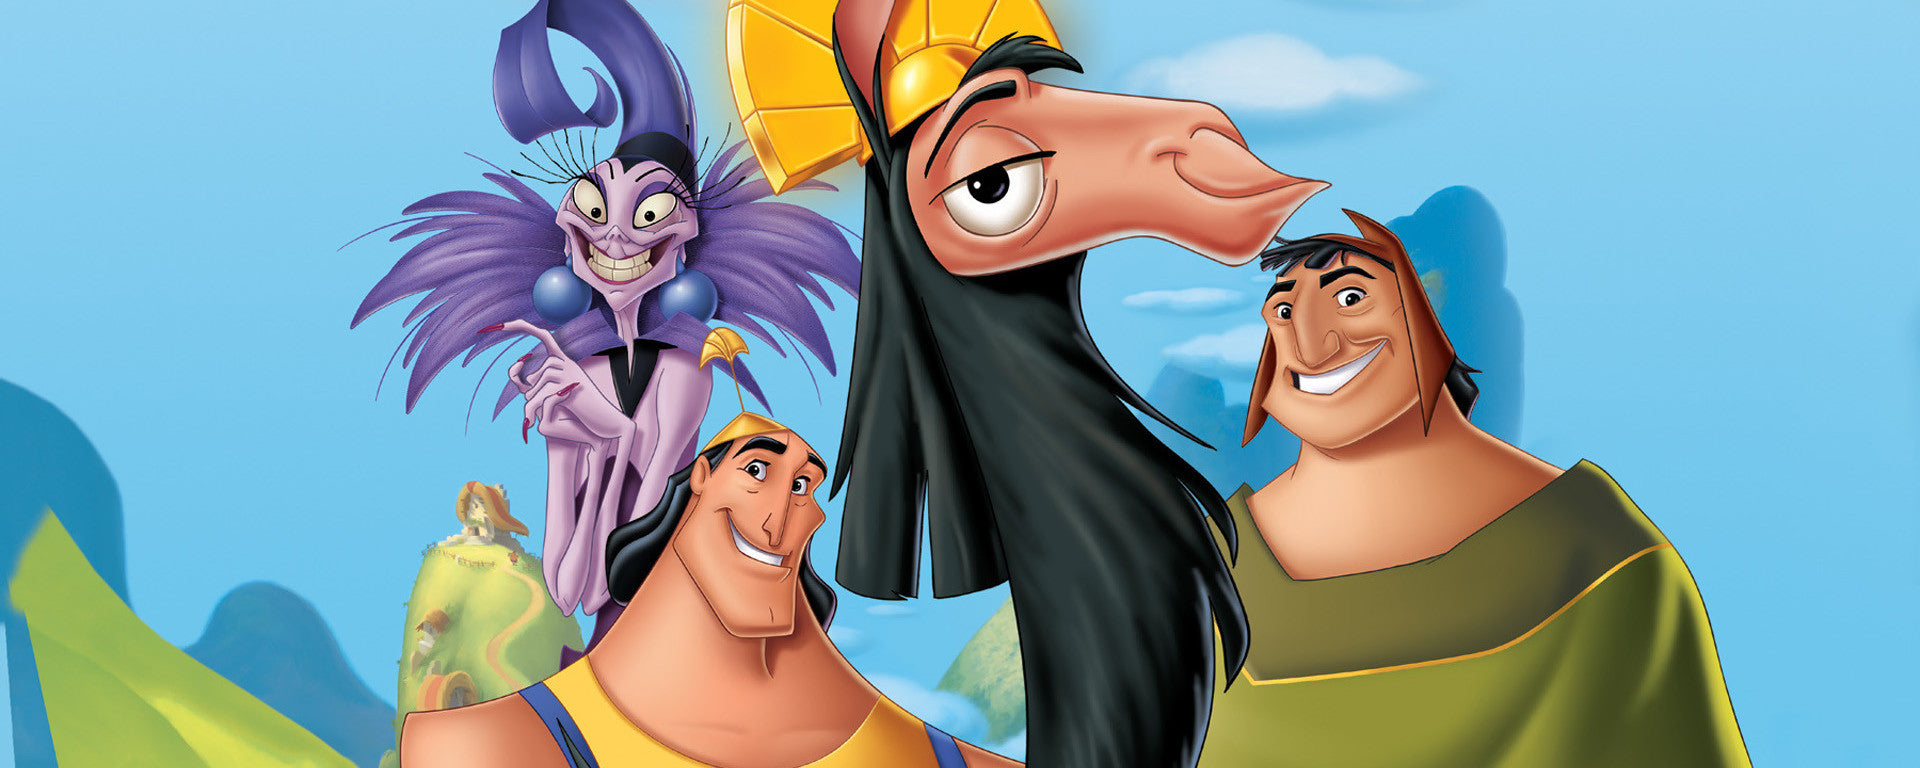 Memeing at the Movies: The Emperor's New Groove